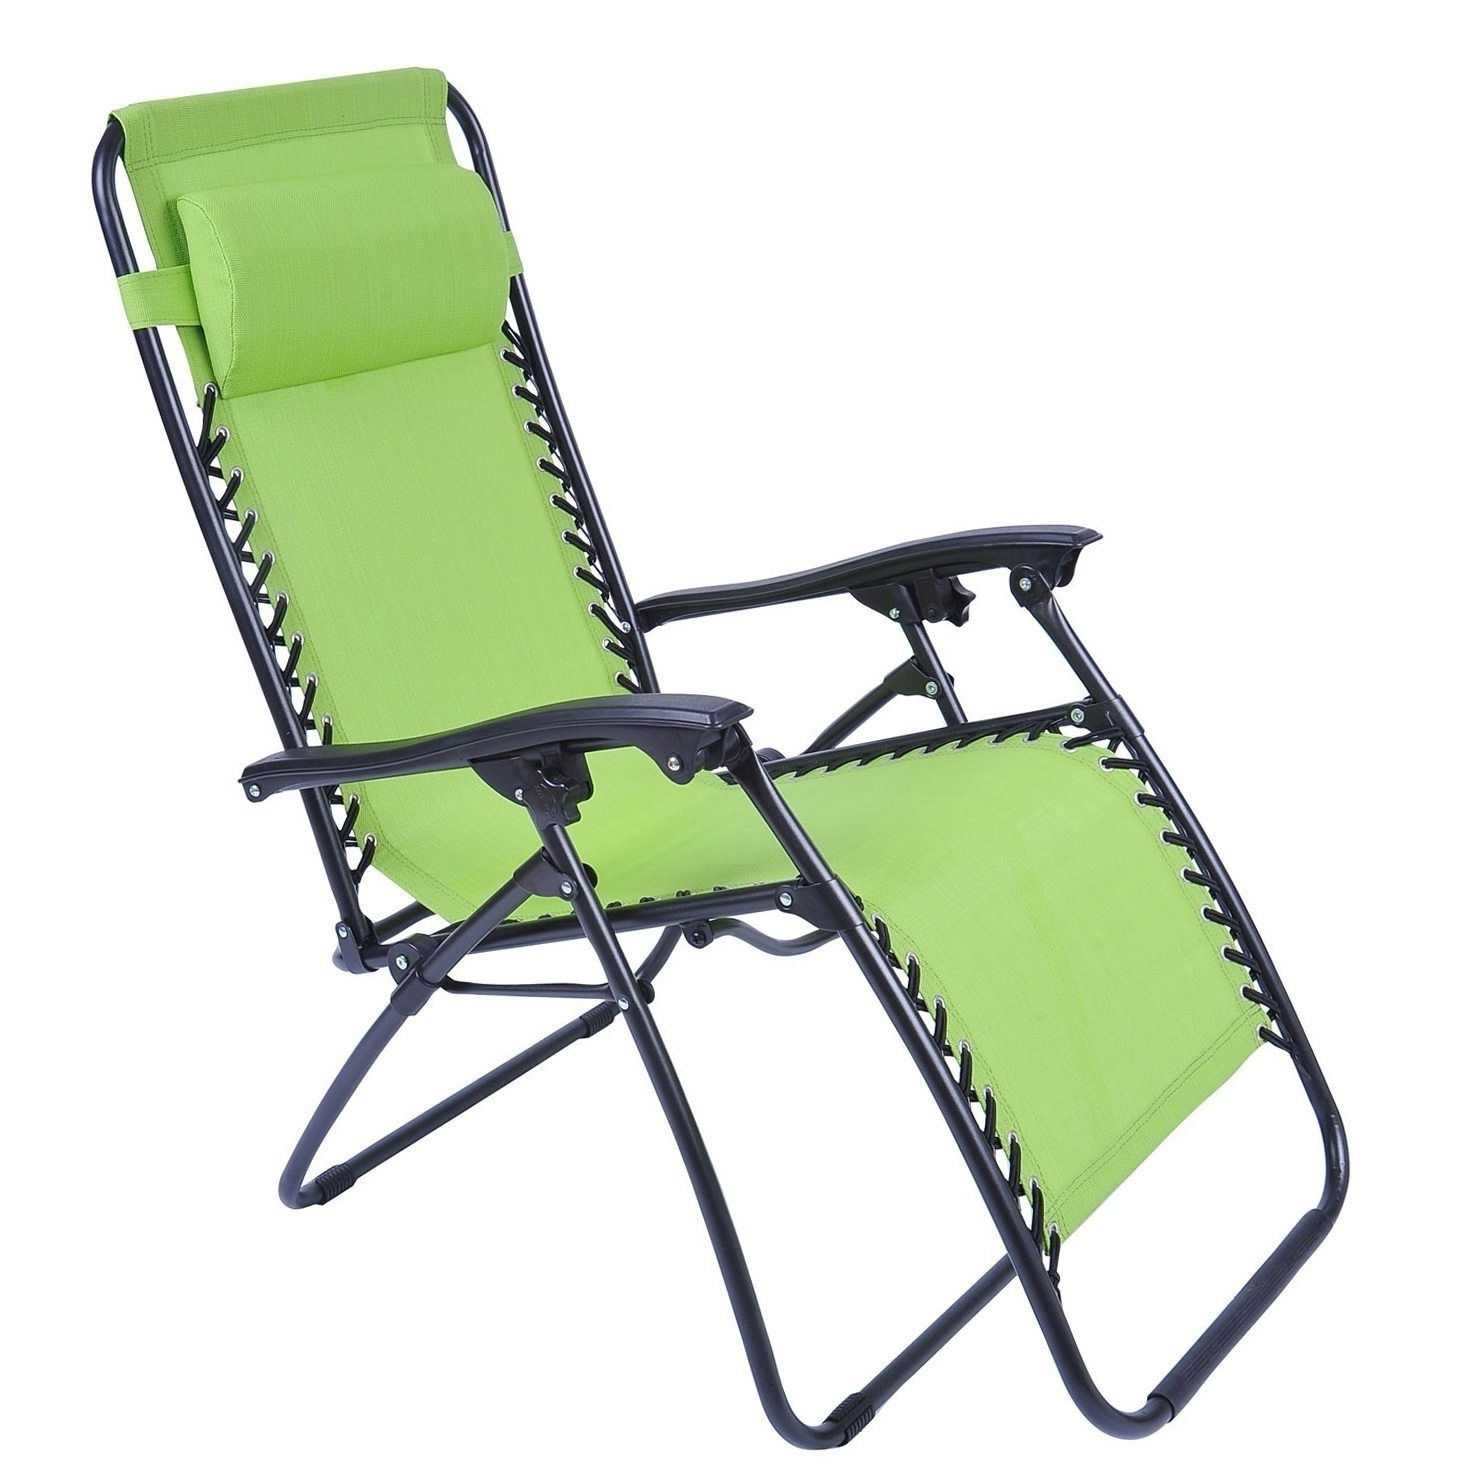 Famous Lounge Chair Outdoor Folding Folding Chaise Lounge Chair Patio Inside Folding Chaise Lounge Chairs (View 6 of 15)